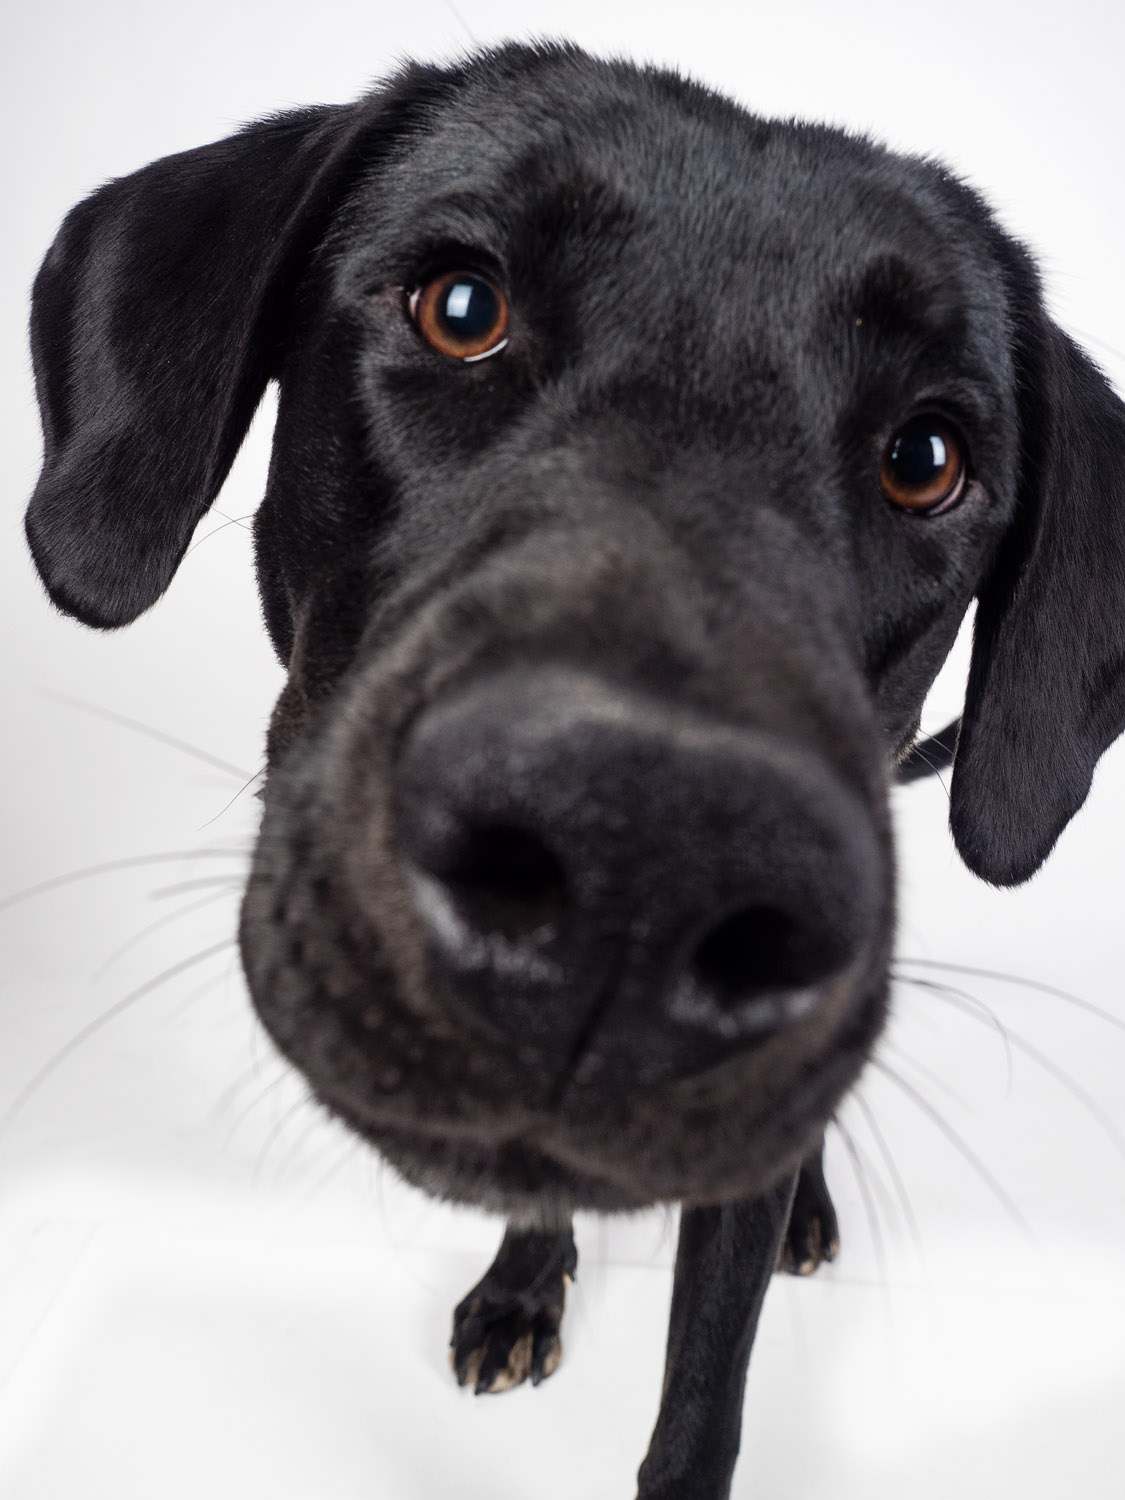 Image: Get the whole face sharp. This image doesn't work because of the cropped of paw and out...